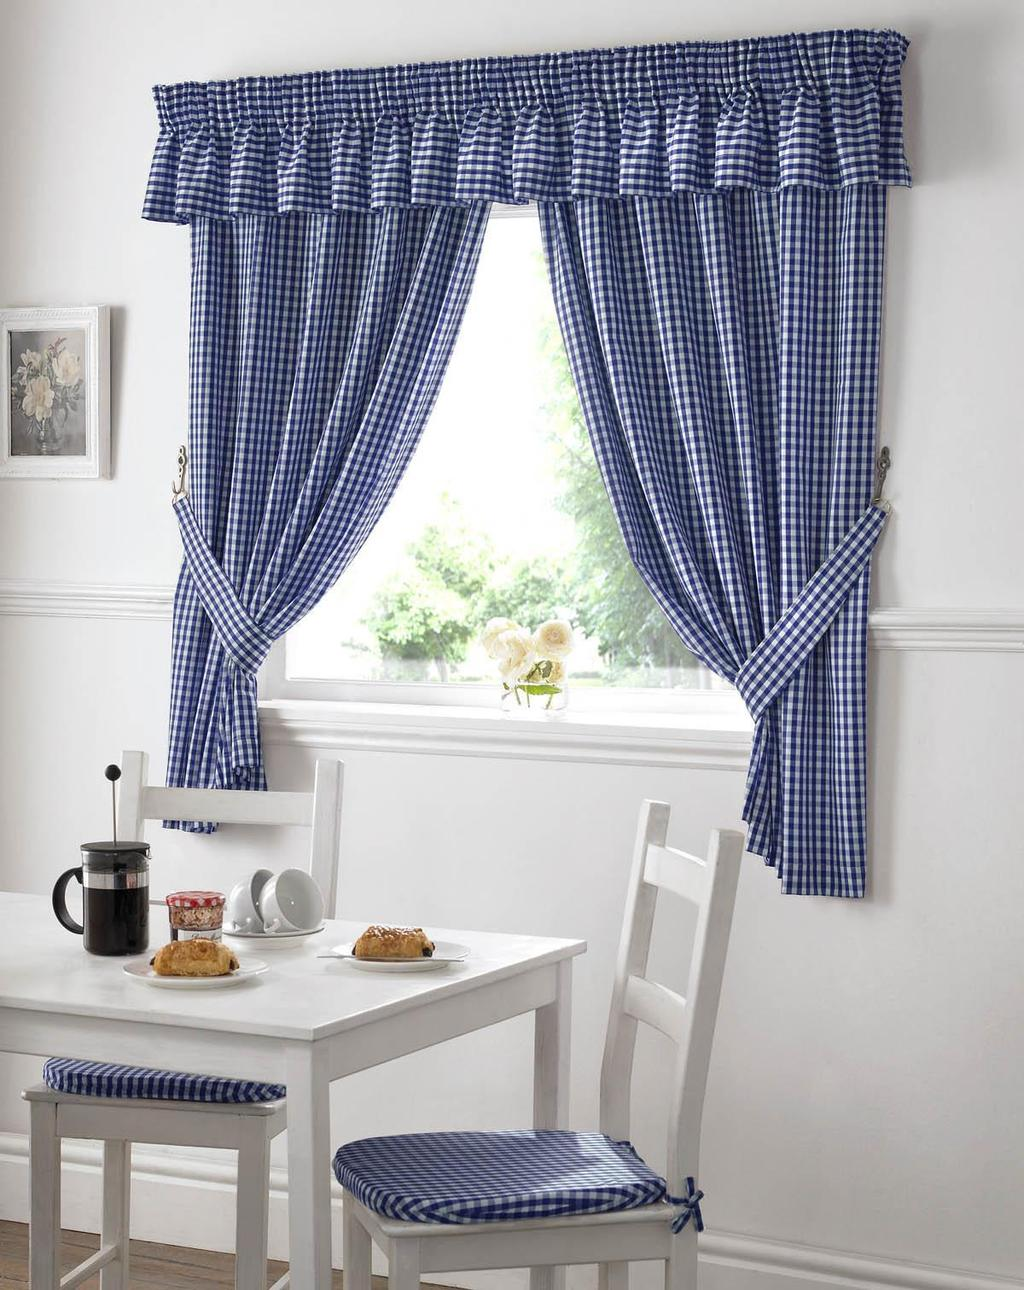 Update Your Curtains